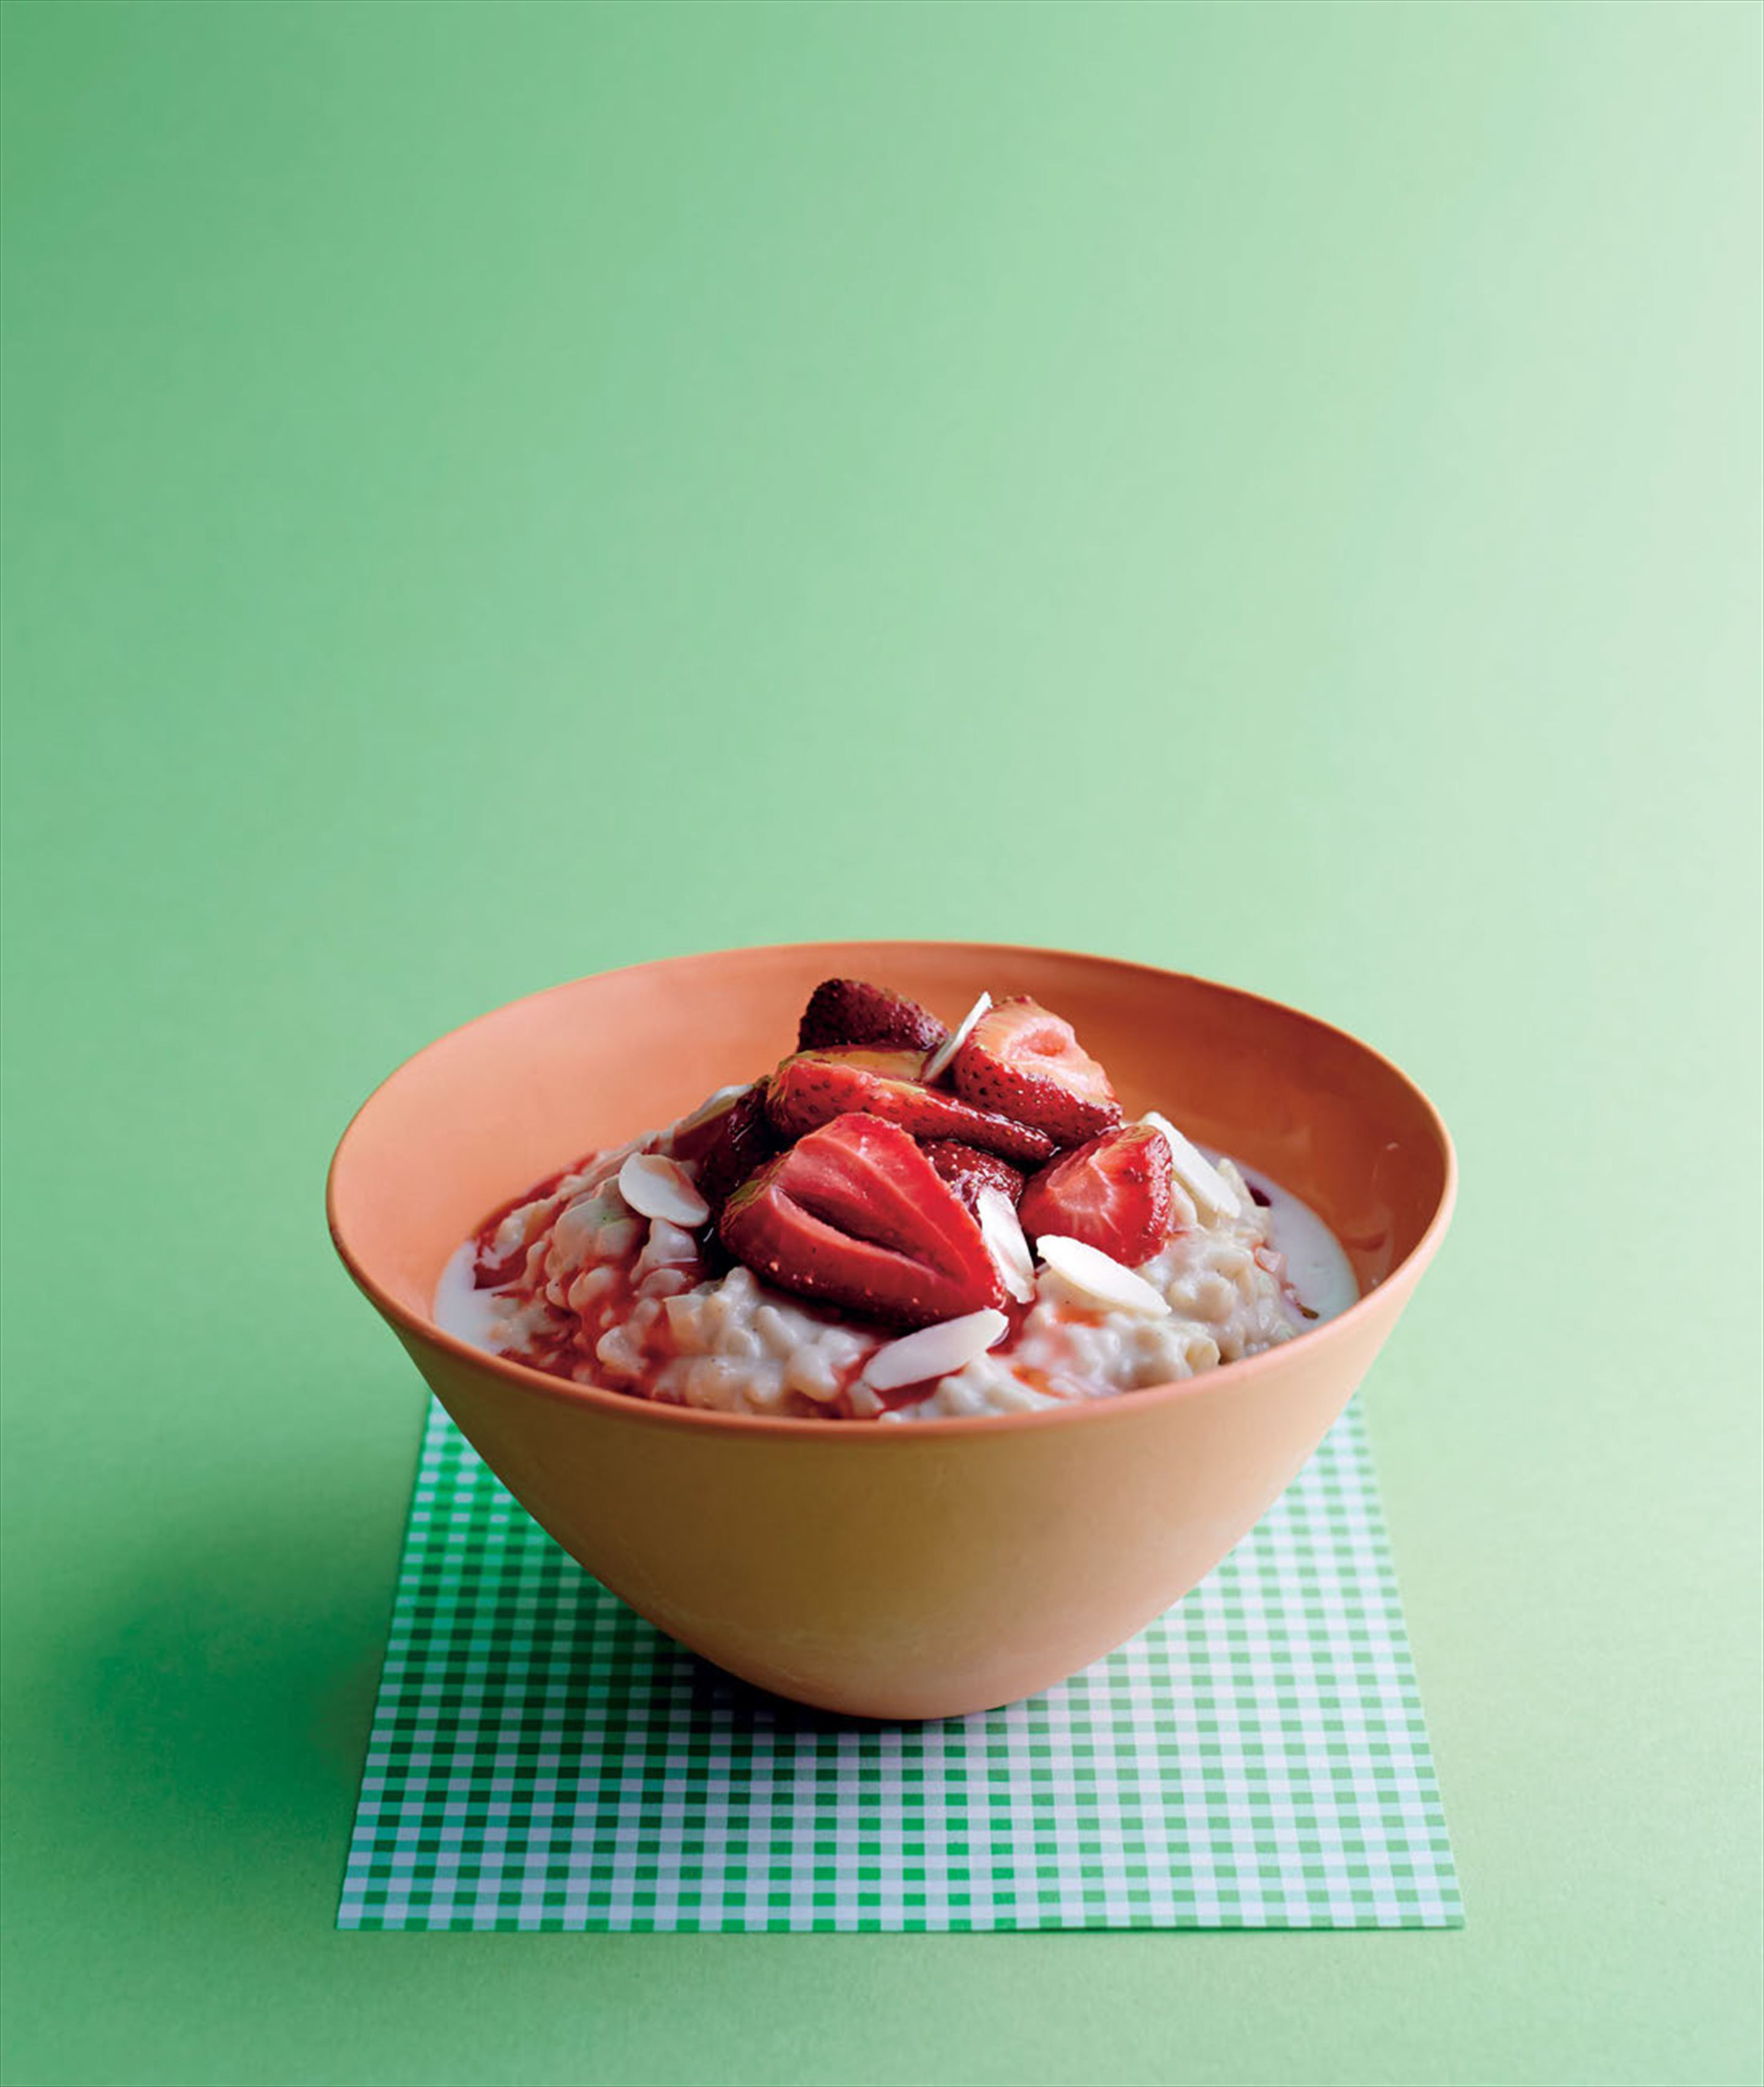 Brown rice pudding with roasted strawberries